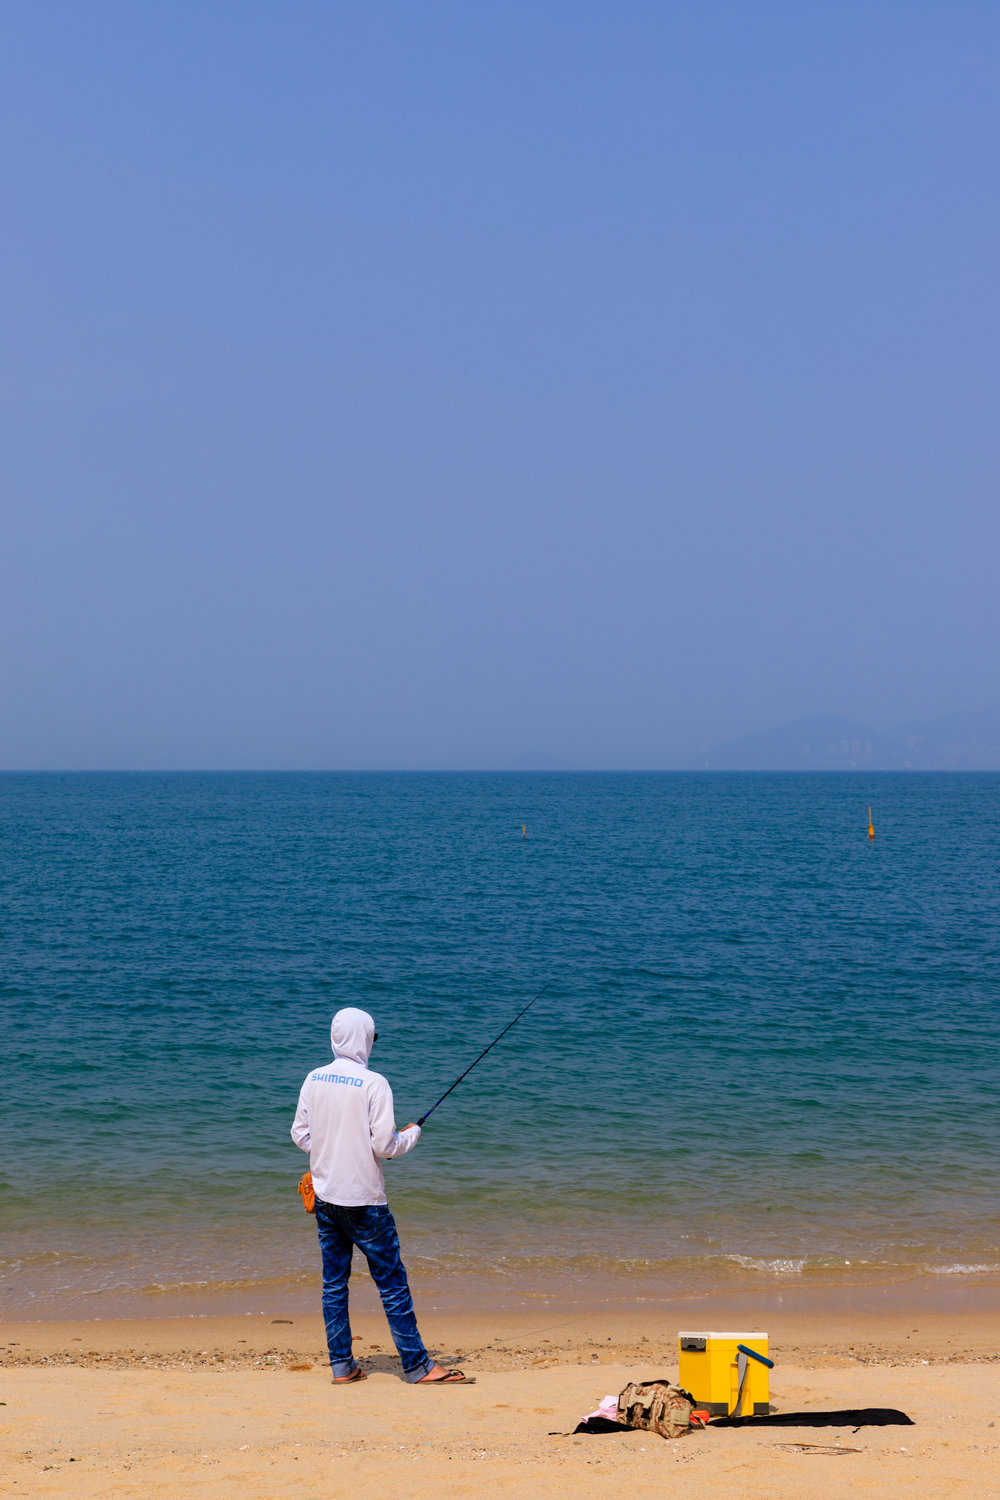 The contrast between the white jacket the fisherman was wearing to ward off the sun, the sand, the sea and the sky just immediately jumped out at me as I walked past. This shot stood out for me as his pose breaks up the horizontal lines given by the shore and the skyline.